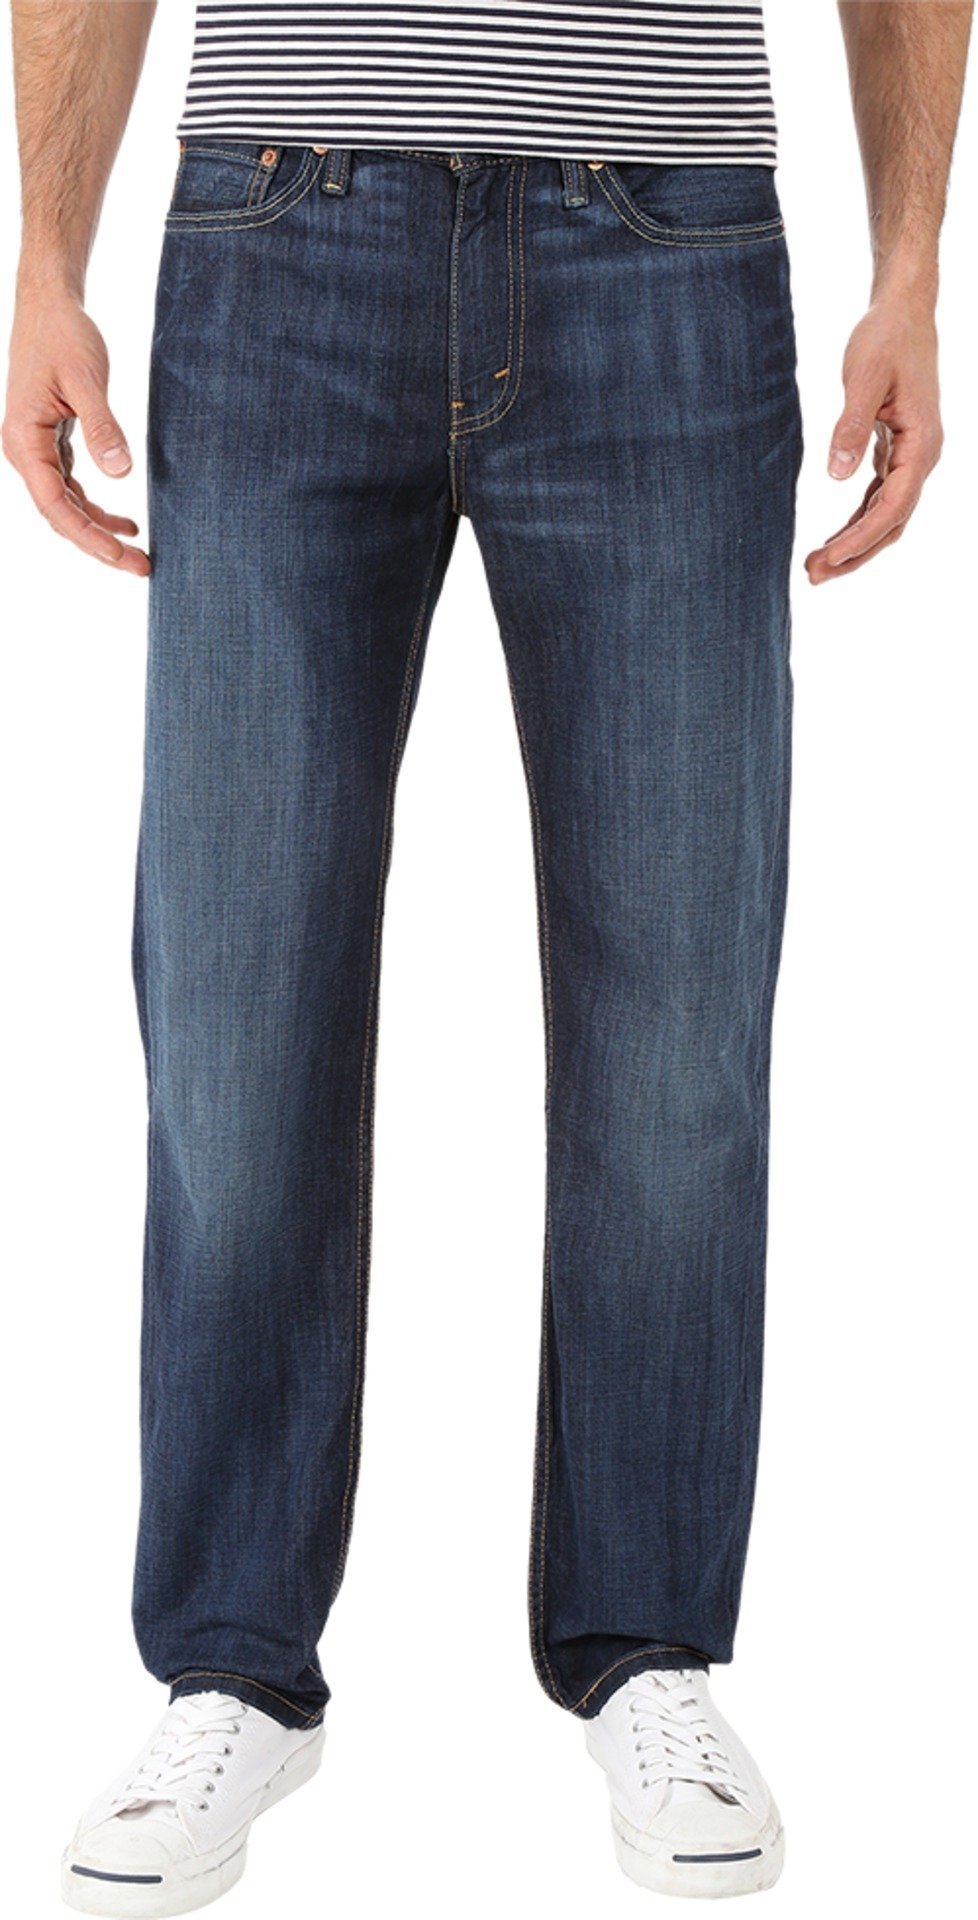 Levi's Men's 514 Straight fit Stretch Jean, Shoestring, 36x32